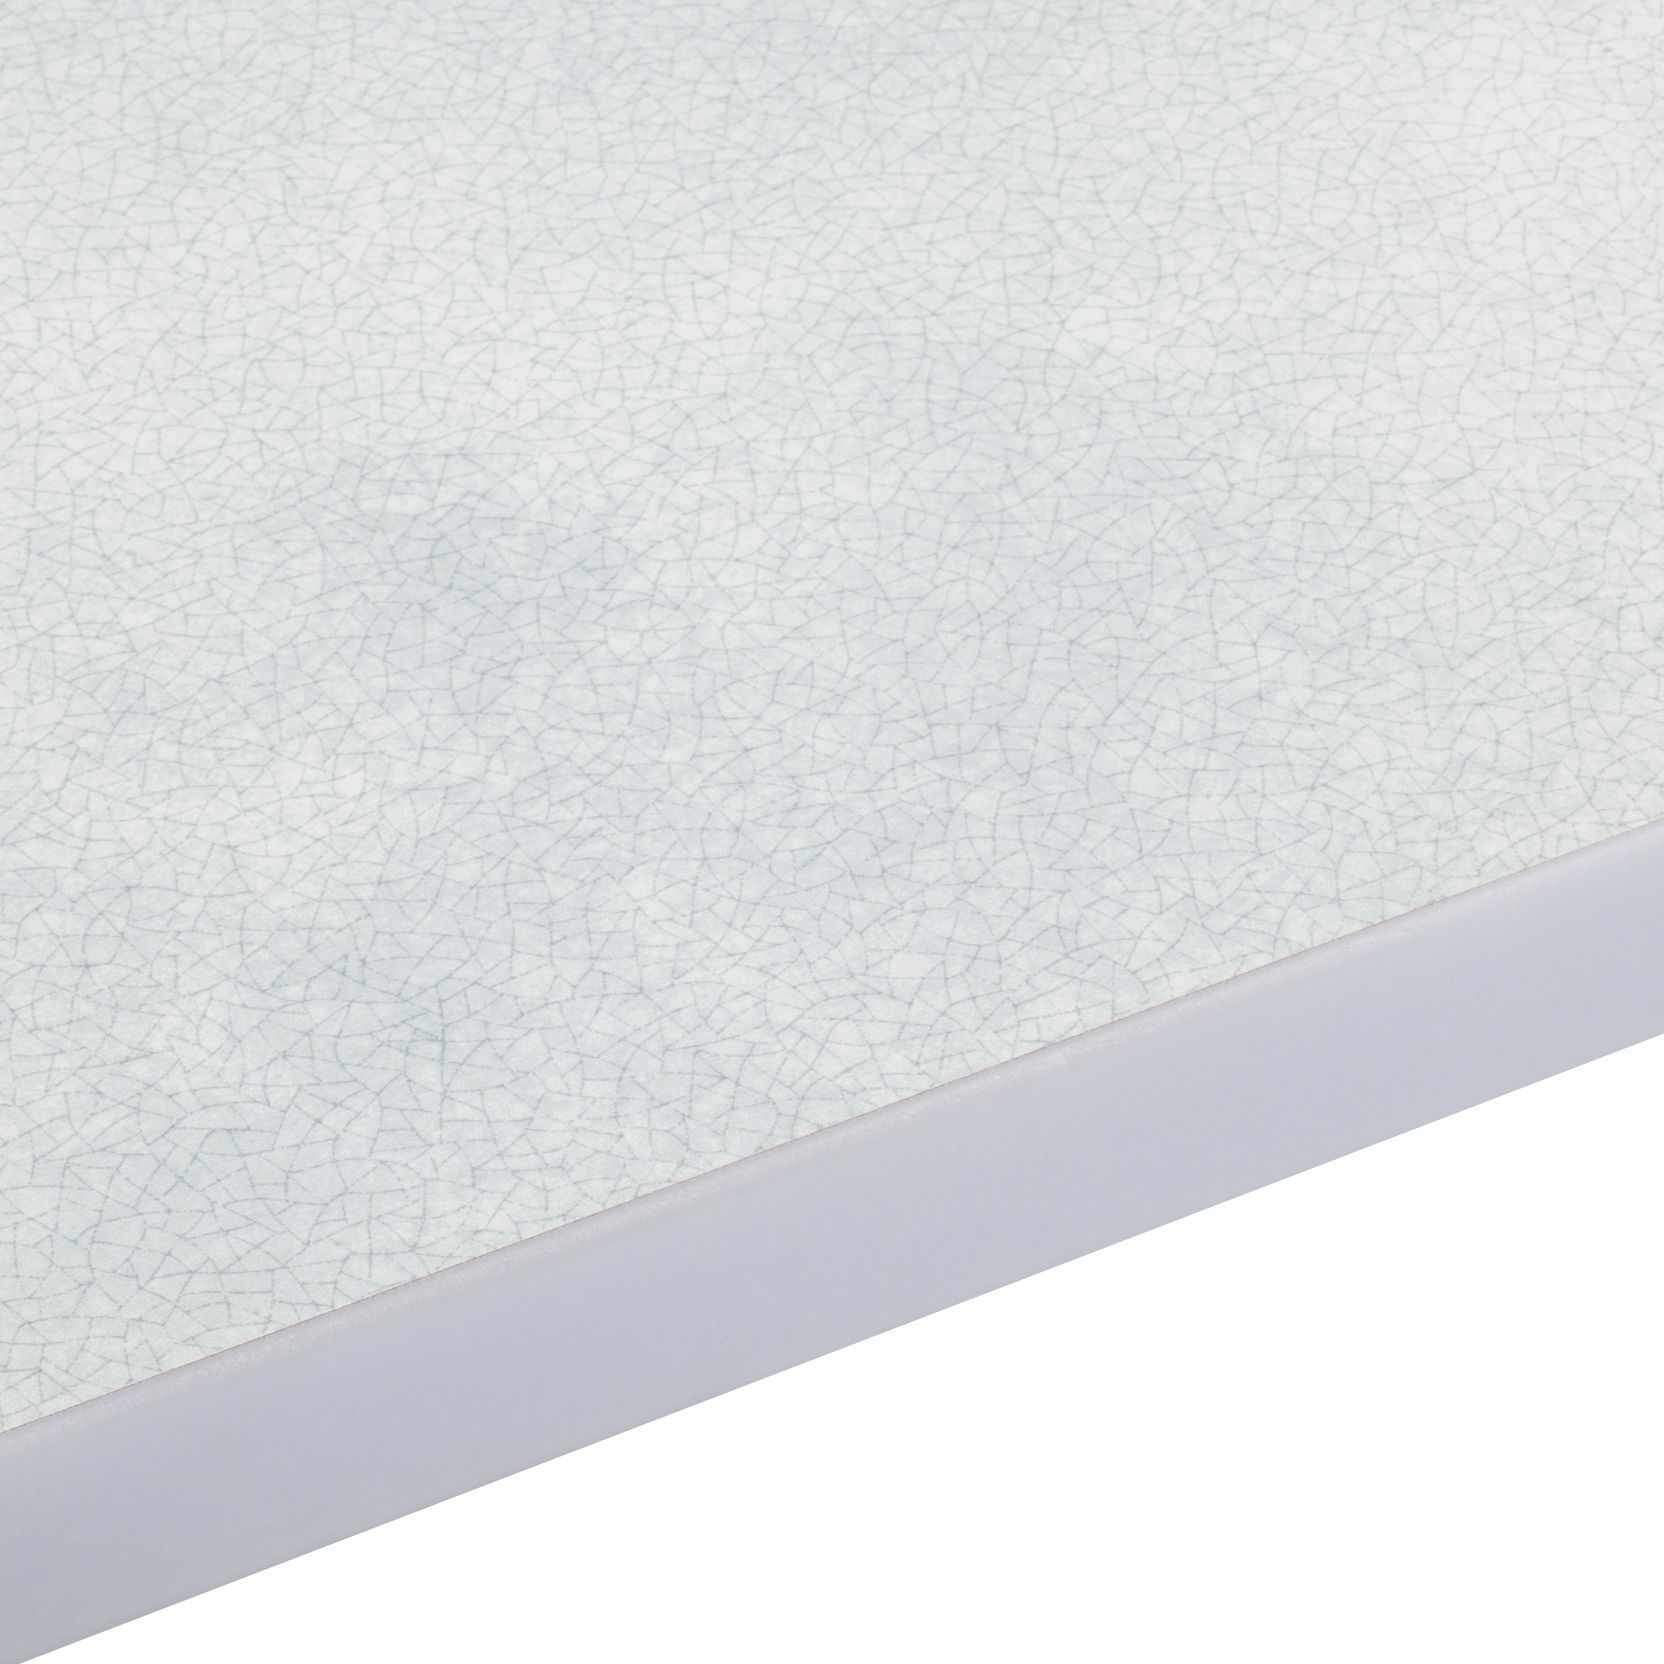 28mm Cracked Glass Laminate Grey Gloss Square Edge Worktop (L)3000mm ...